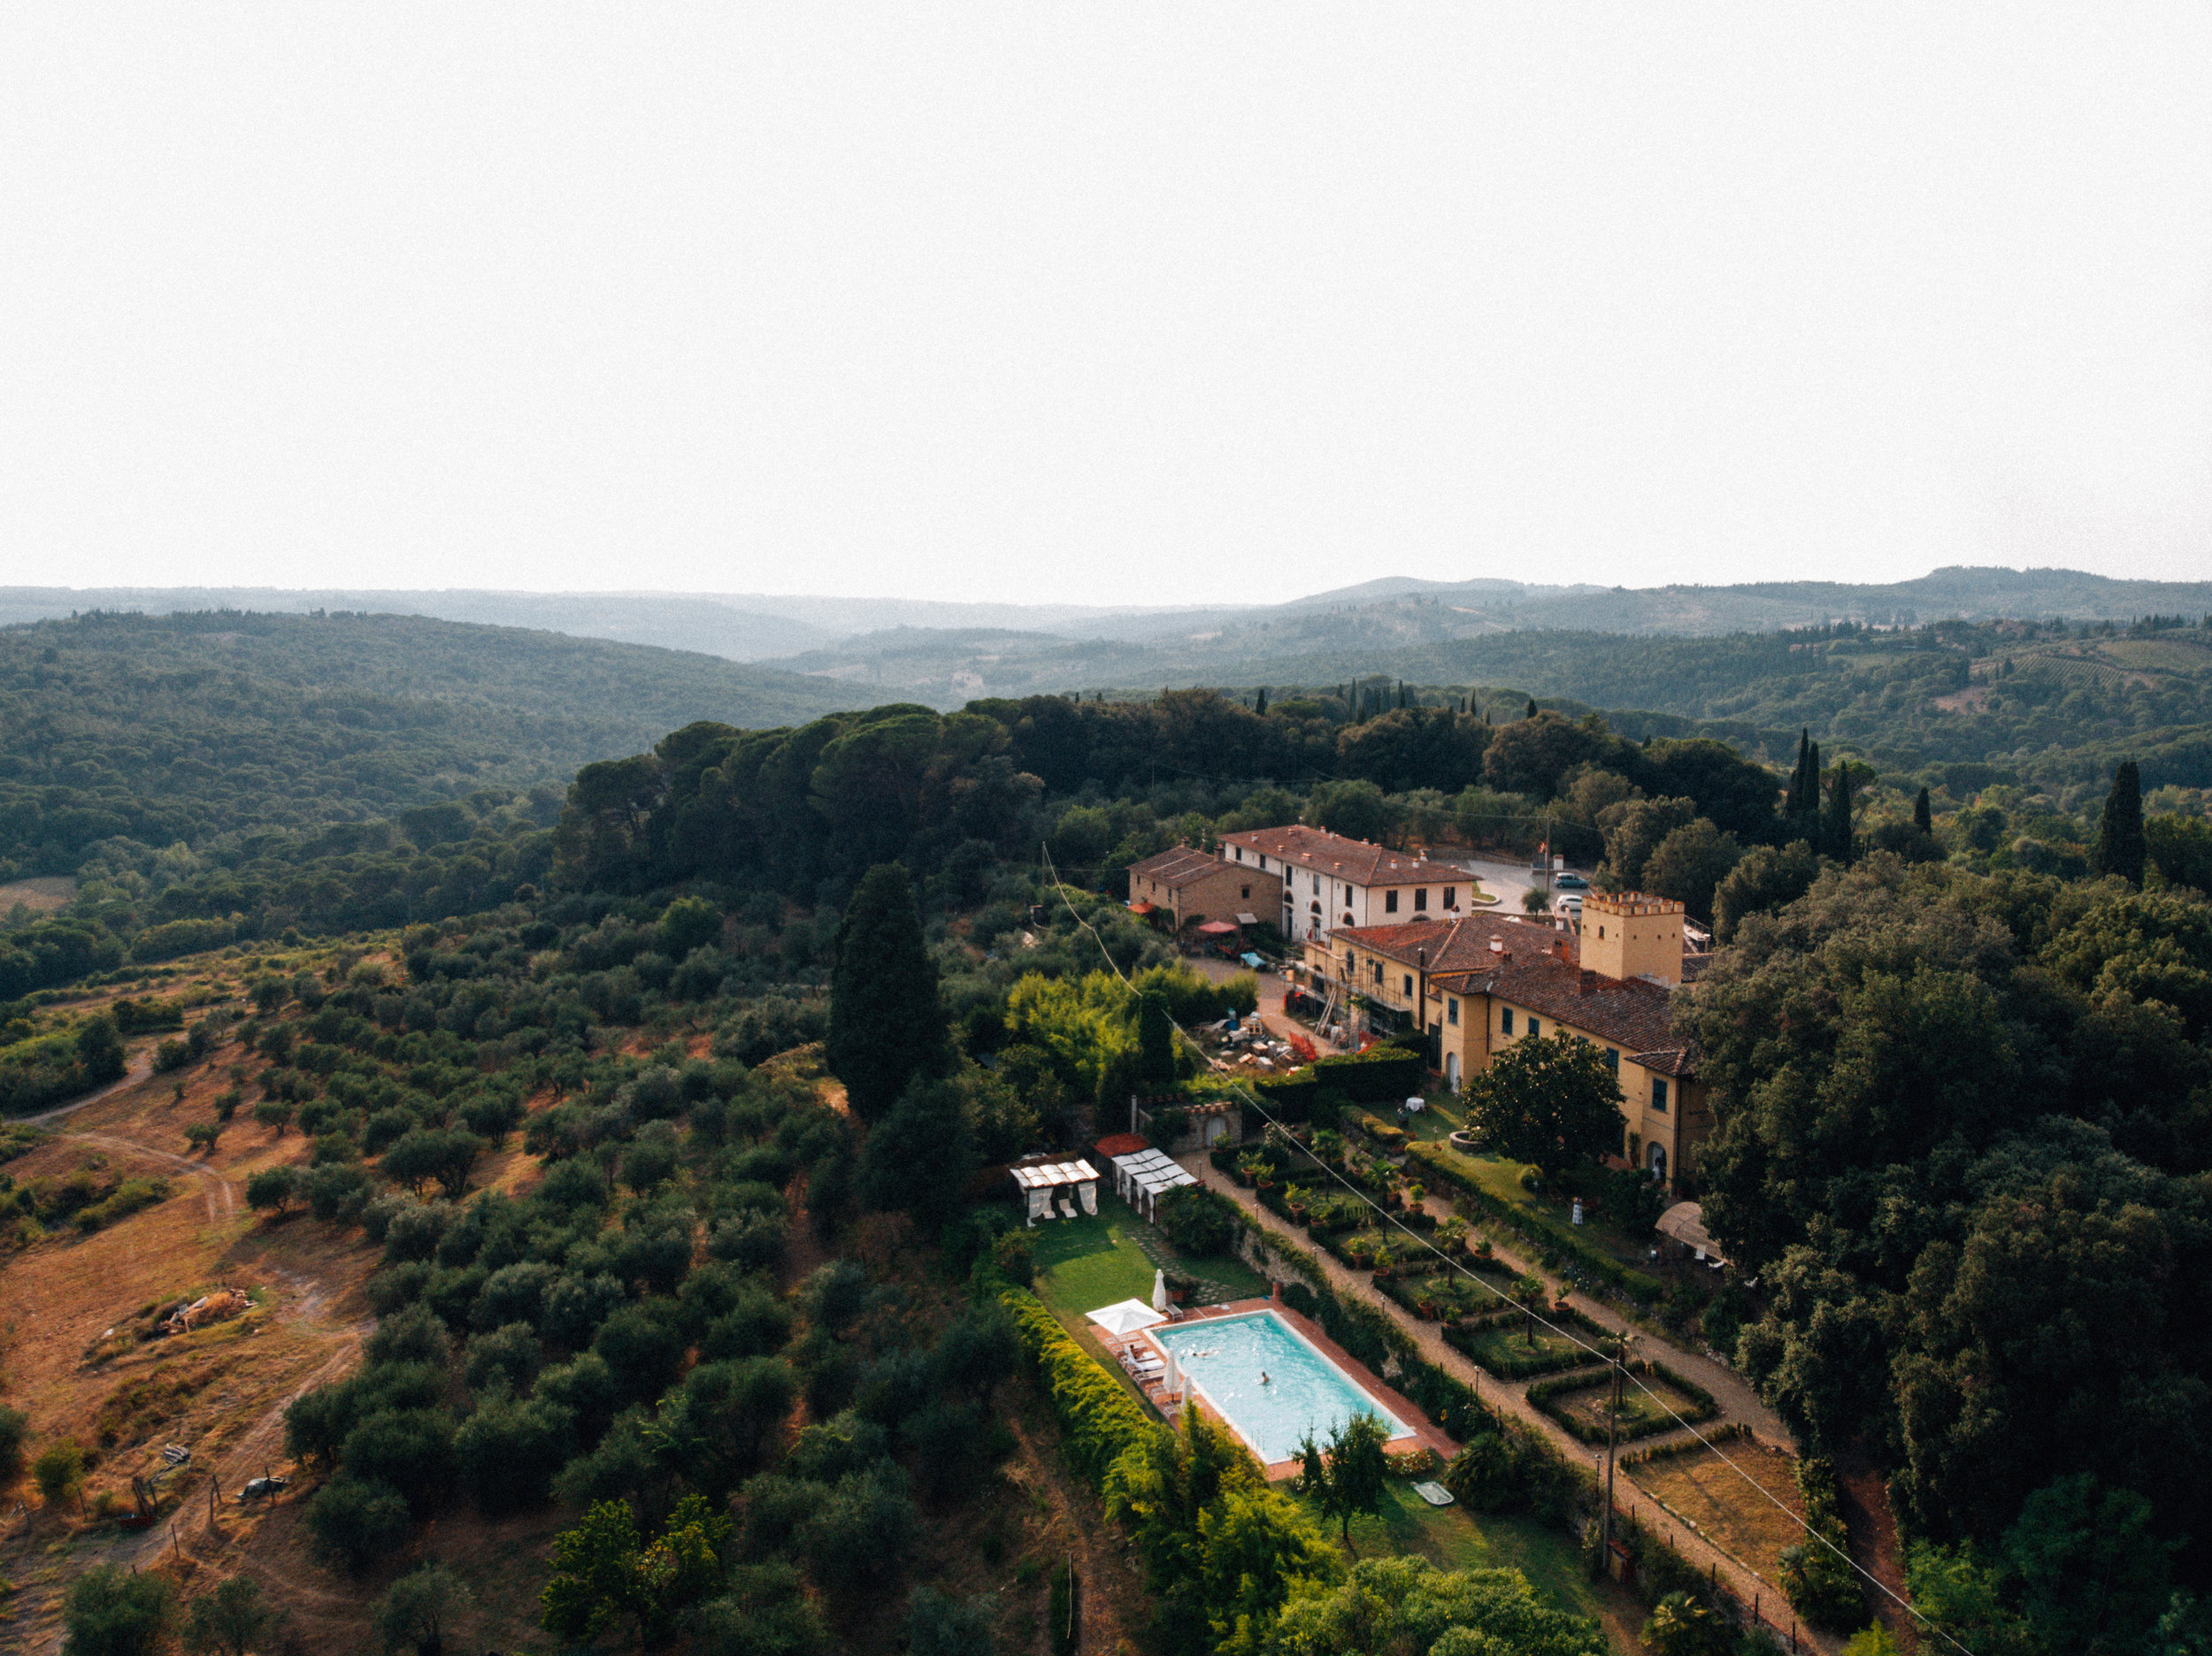 Villa il Leccio - We will be lodging, eating and workshopping in a villa from the 1200s in Strada in Chianti! How cool is that? The villa is located 19 miles away from Florence and 26 miles from Siena.Each ticket includes lodging for the nights of April 9th-11th, as well as lunch and dinner the 9th-11th and breakfast the 10th-12th. Checkout is scheduled on the morning of April 12th.